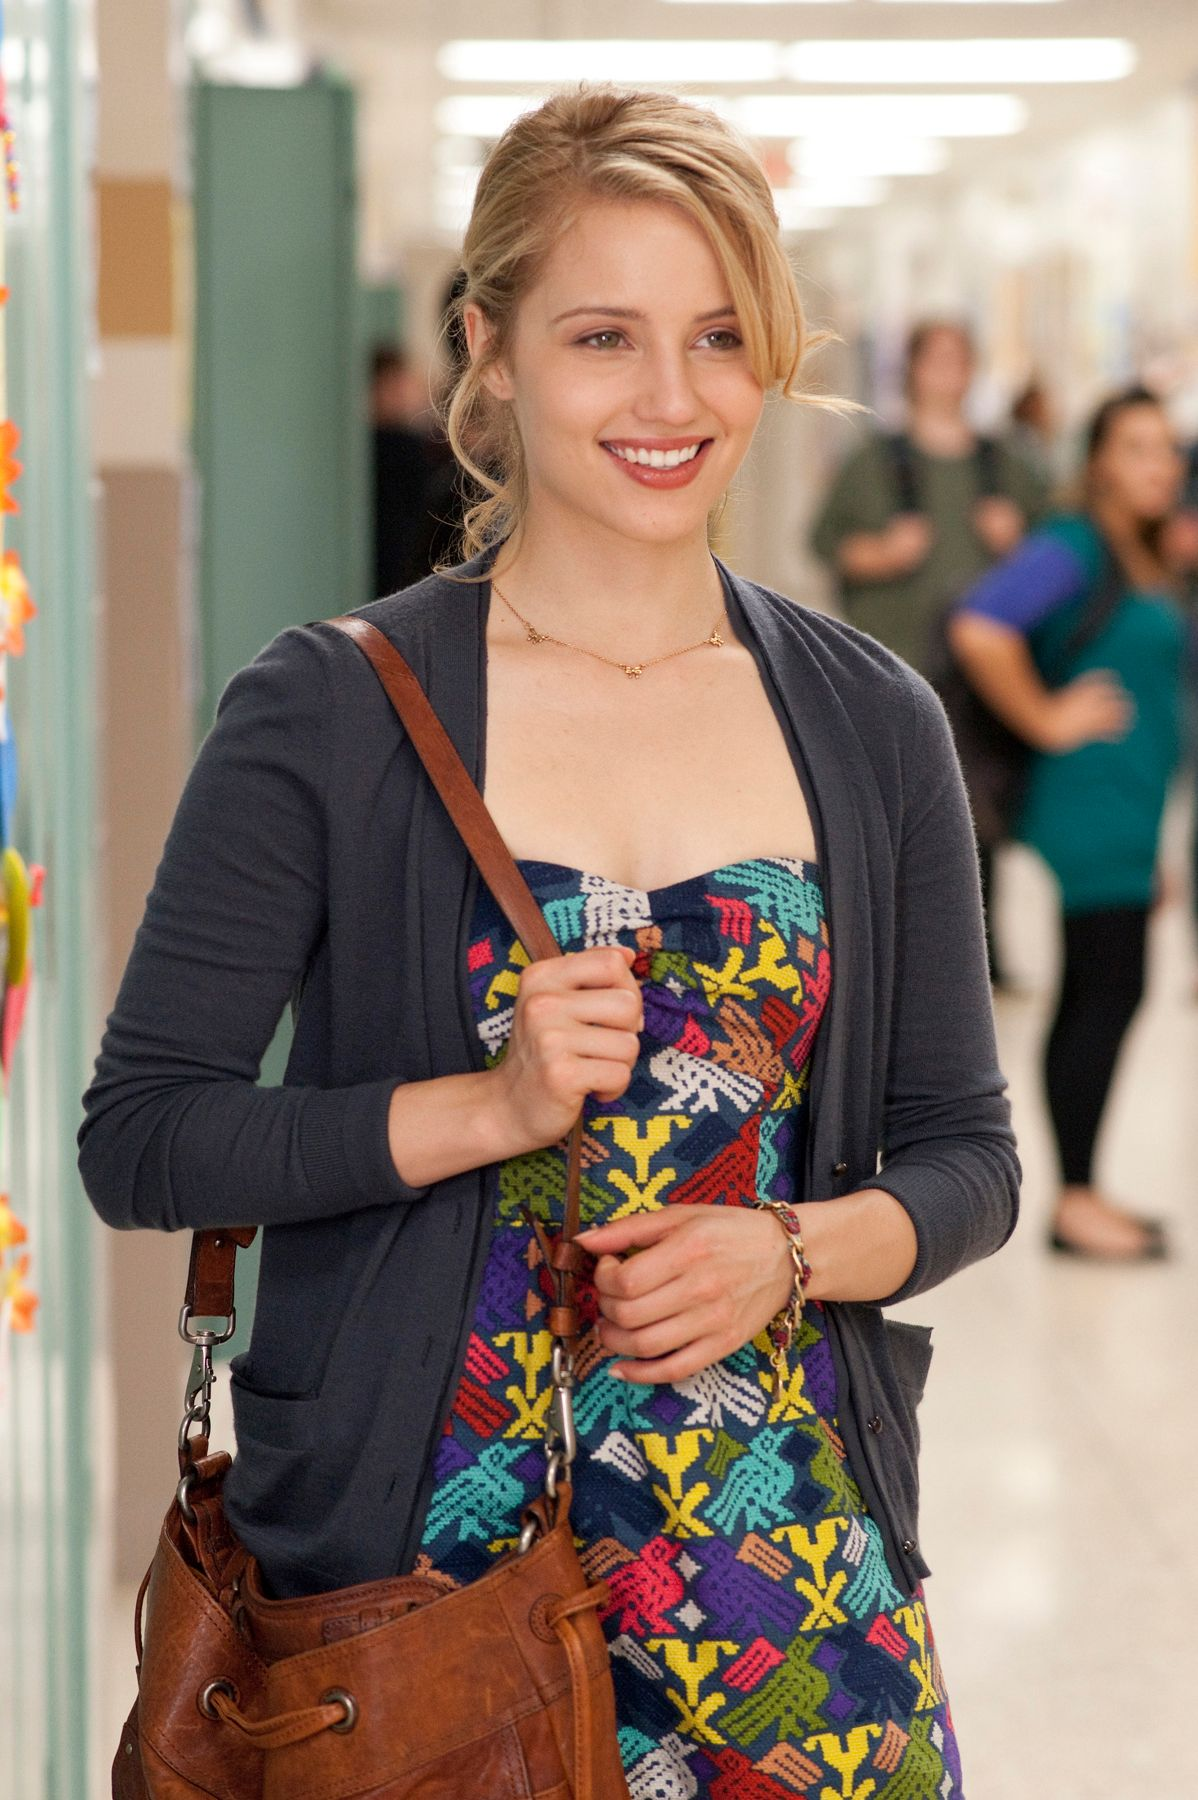 Dianna Agron Interview I AM NUMBER FOUR and GLEE | Collider